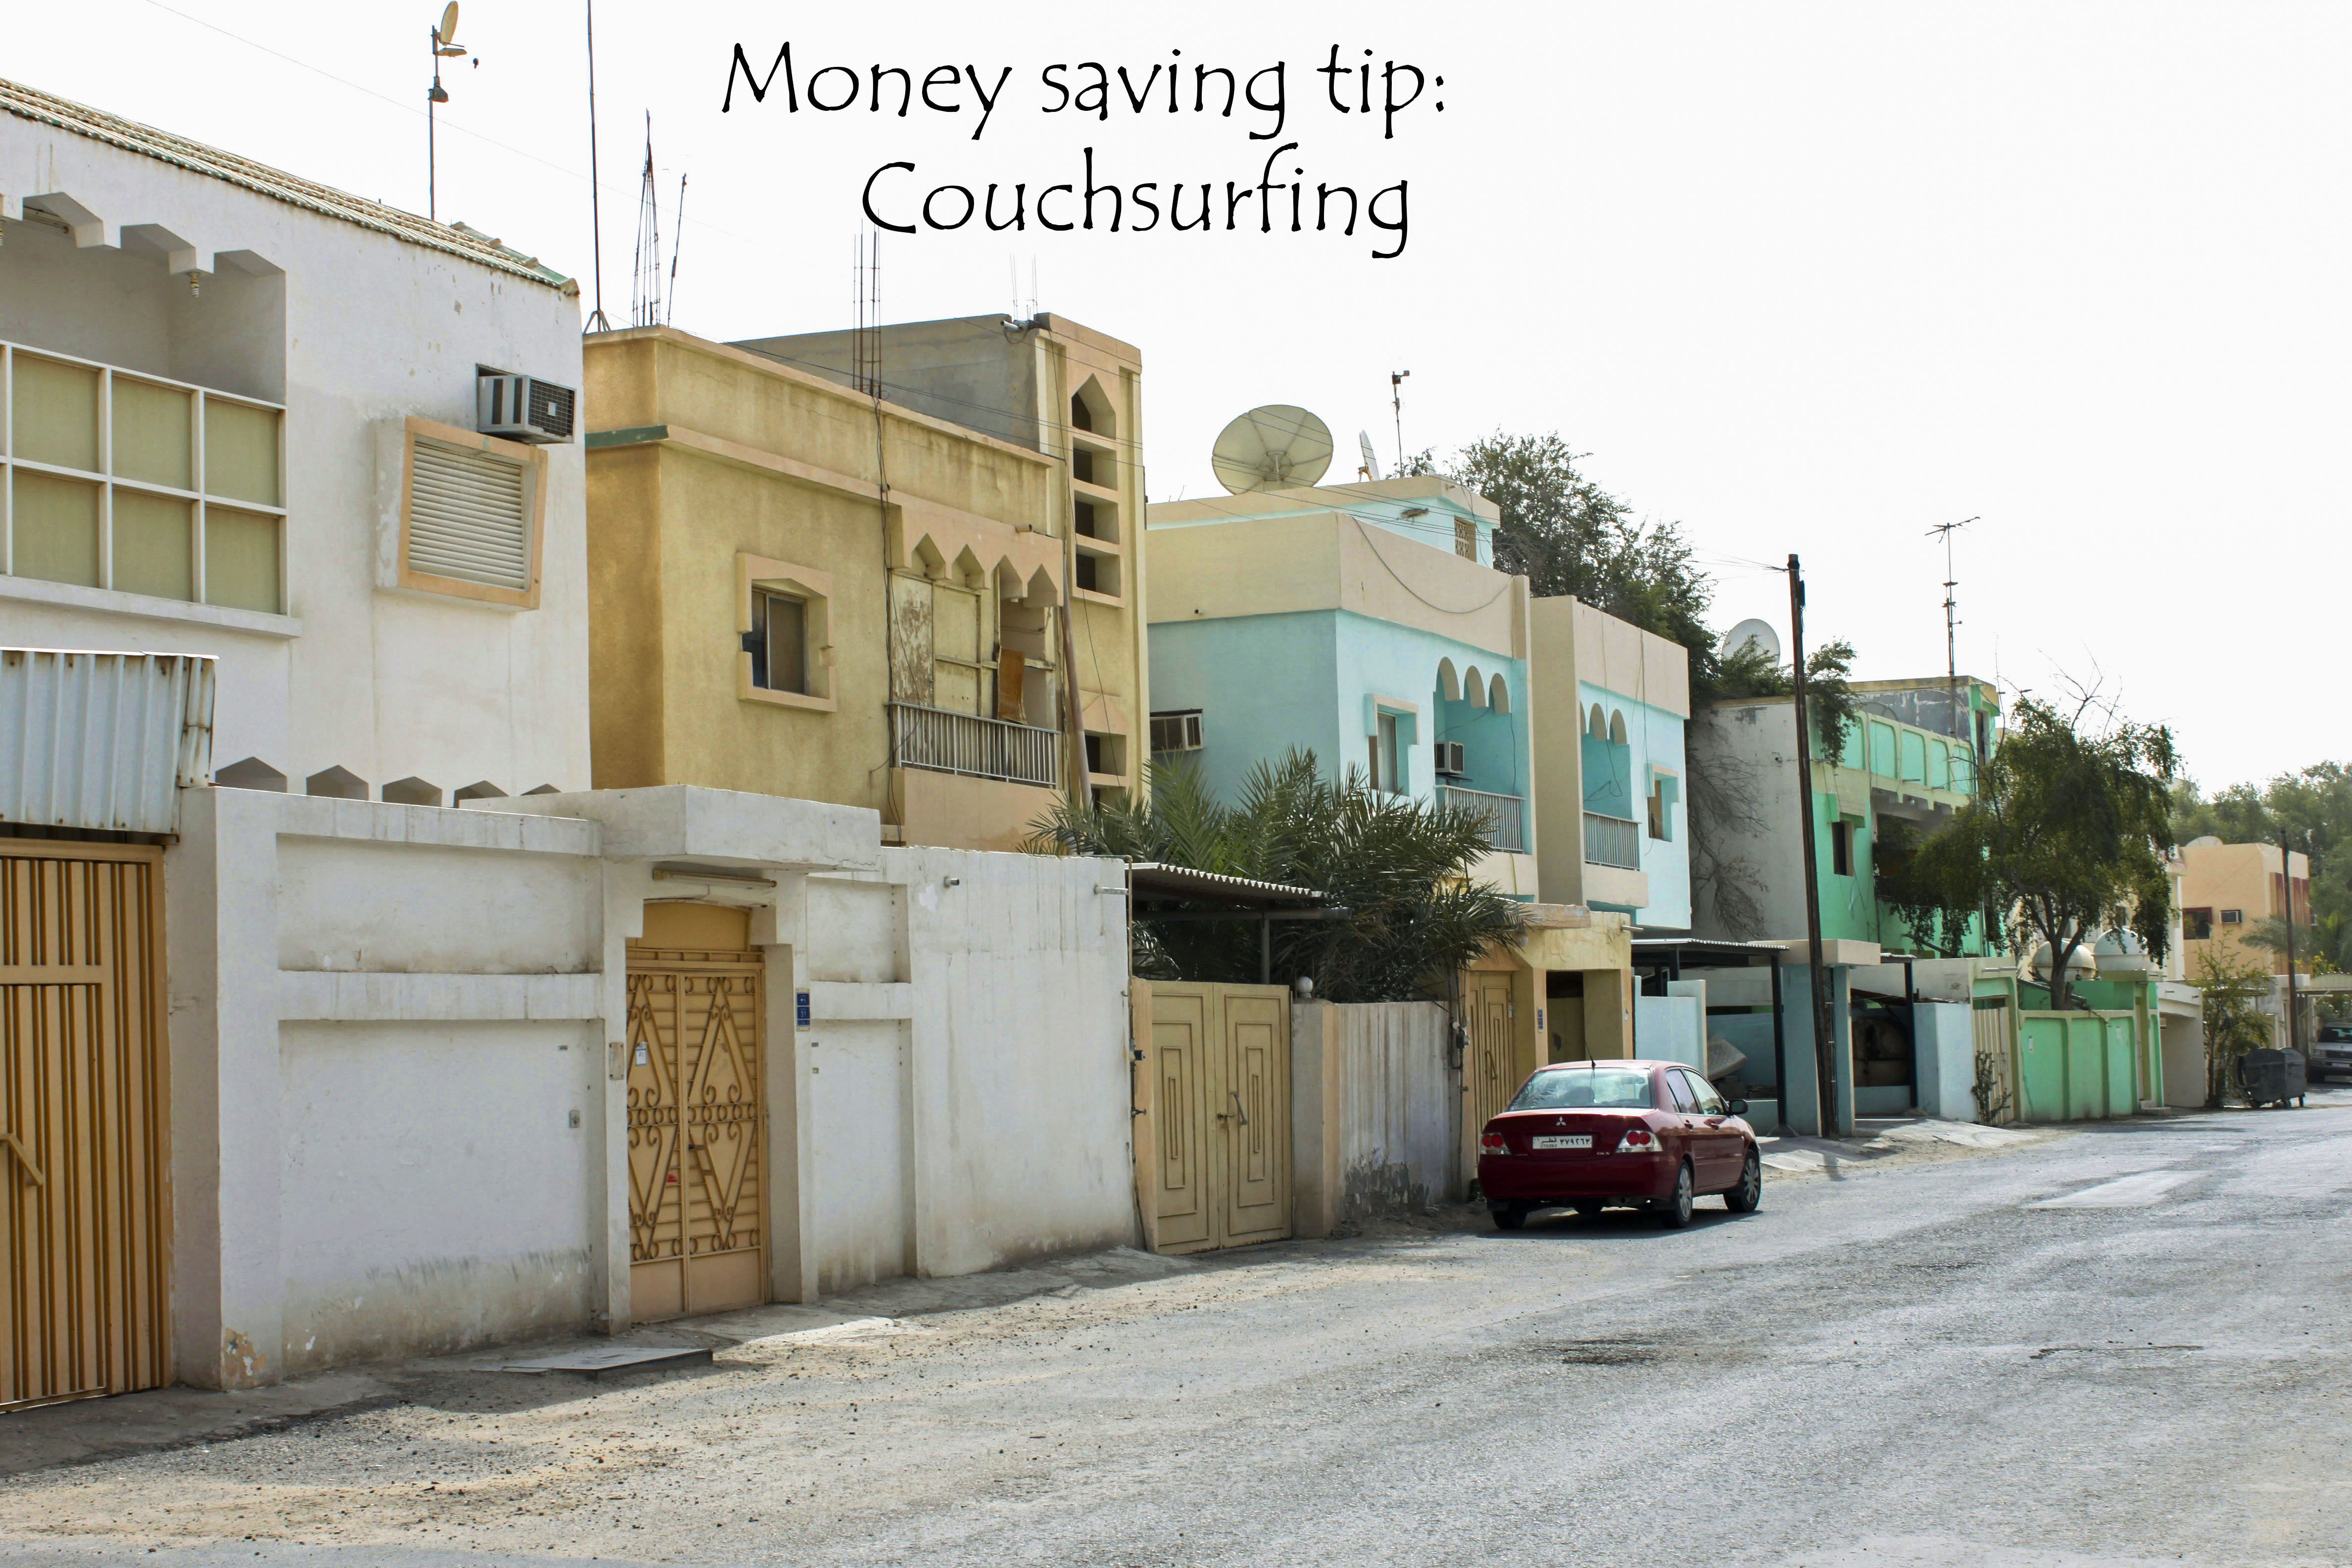 Getting started with couchsurfing http://aworldofbackpacking.com/couchsurfing/